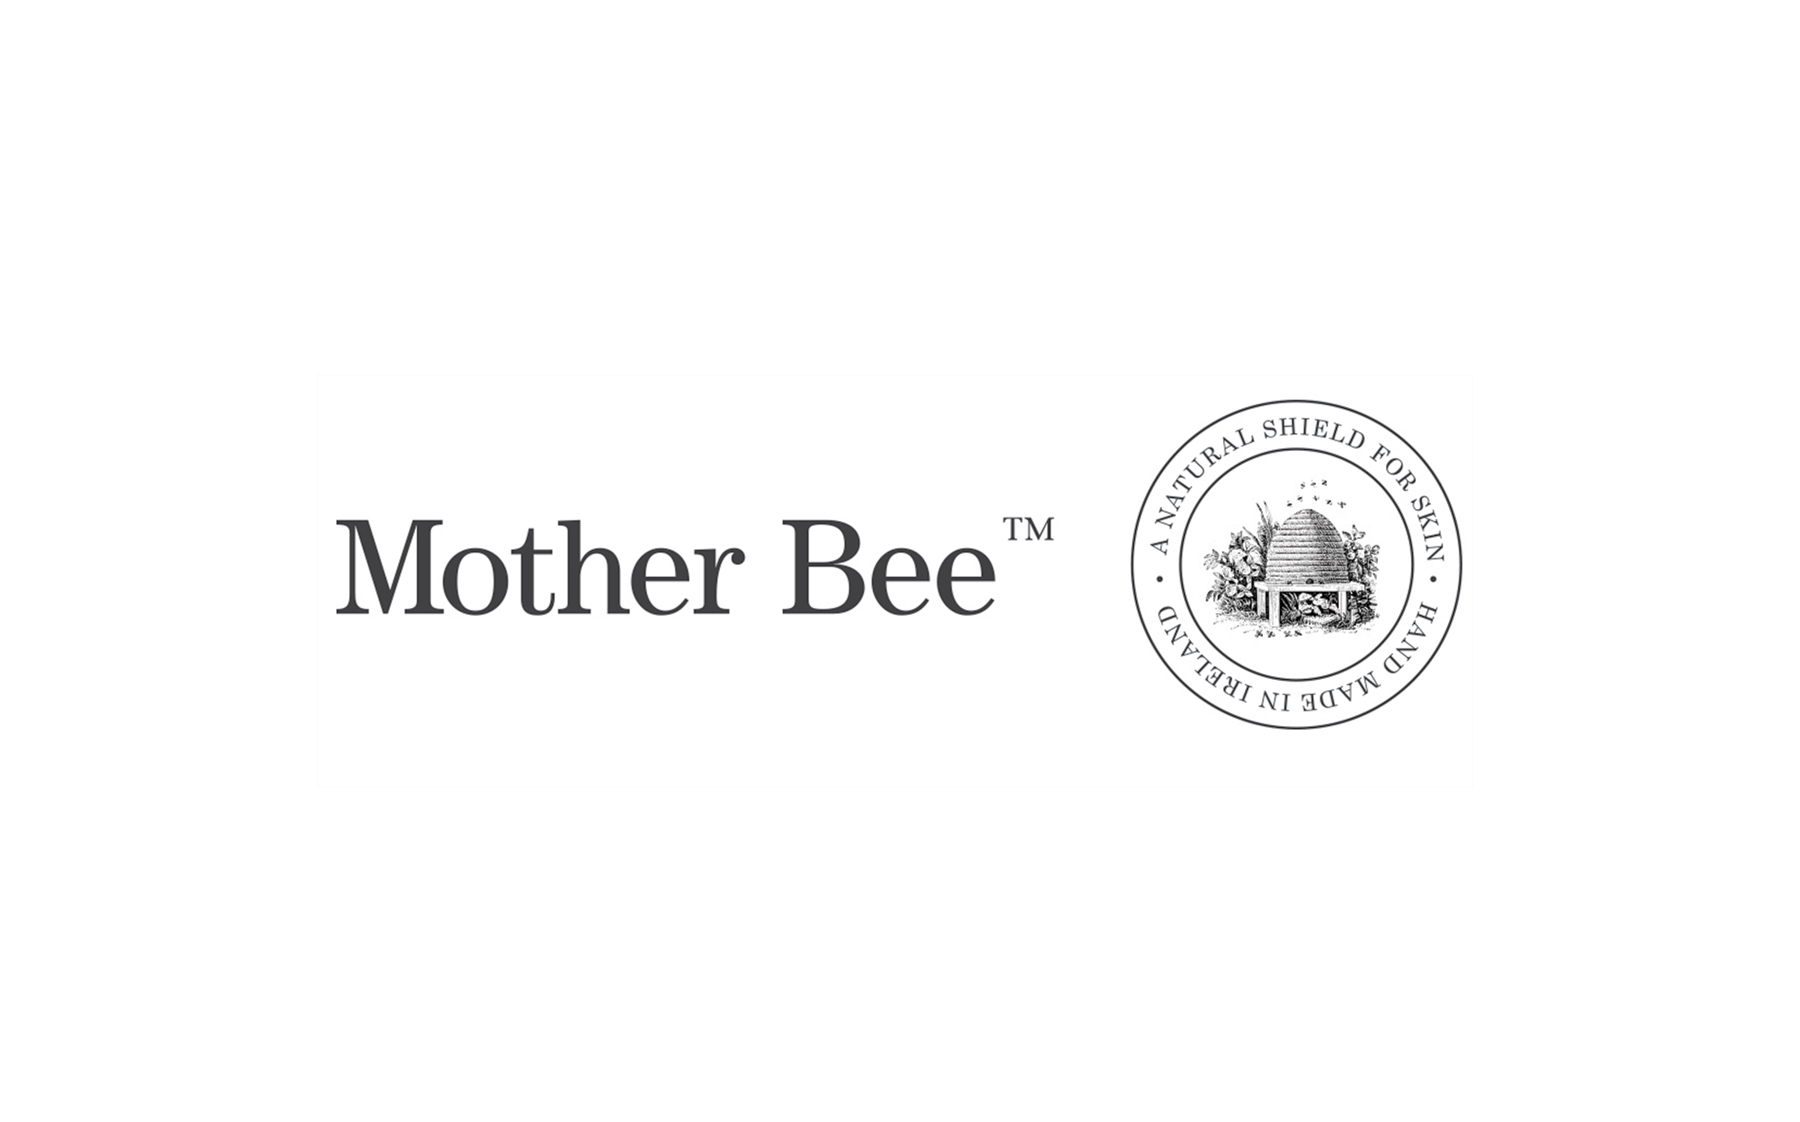 motherbee_full